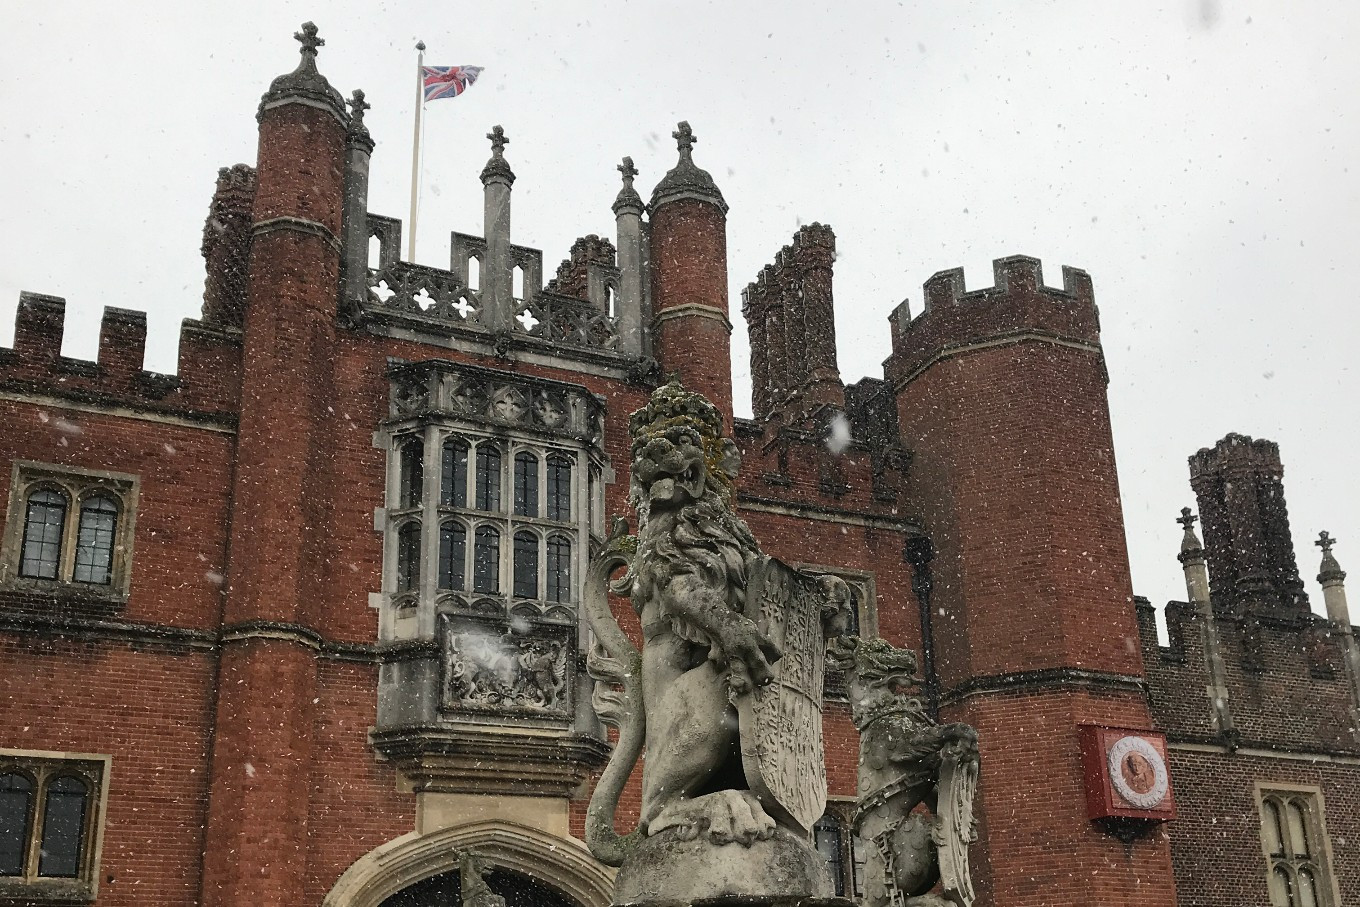 Retracing England's regal past in Hampton Court